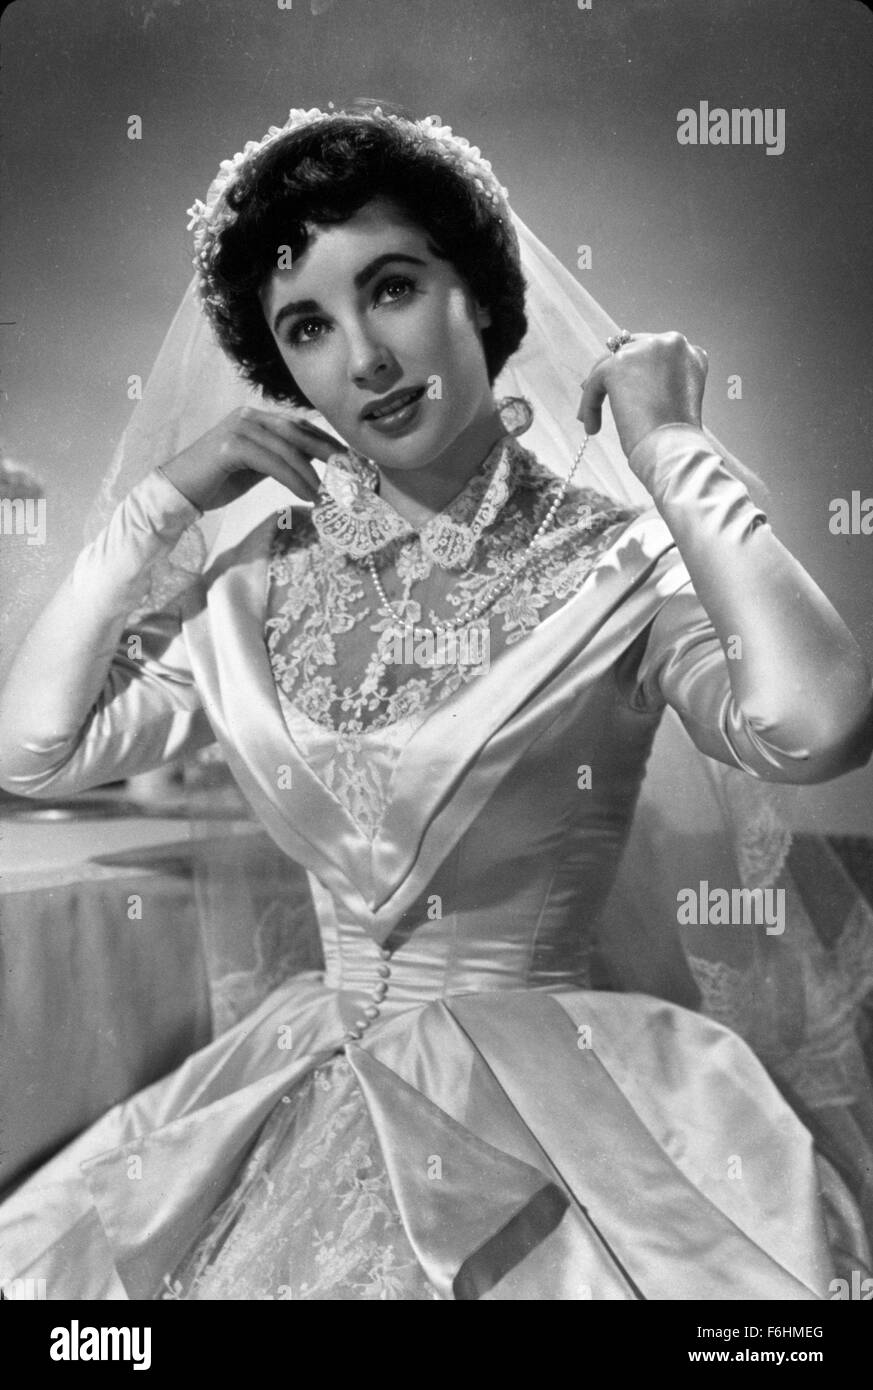 1950, Film Title: FATHER OF THE BRIDE, Director: VINCENTE MINNELLI, Studio:  MGM, Pictured: CLOTHING, ELIZABETH TAYLOR, WEDDING GOWN, STUDIO, PORTRAIT,  ...